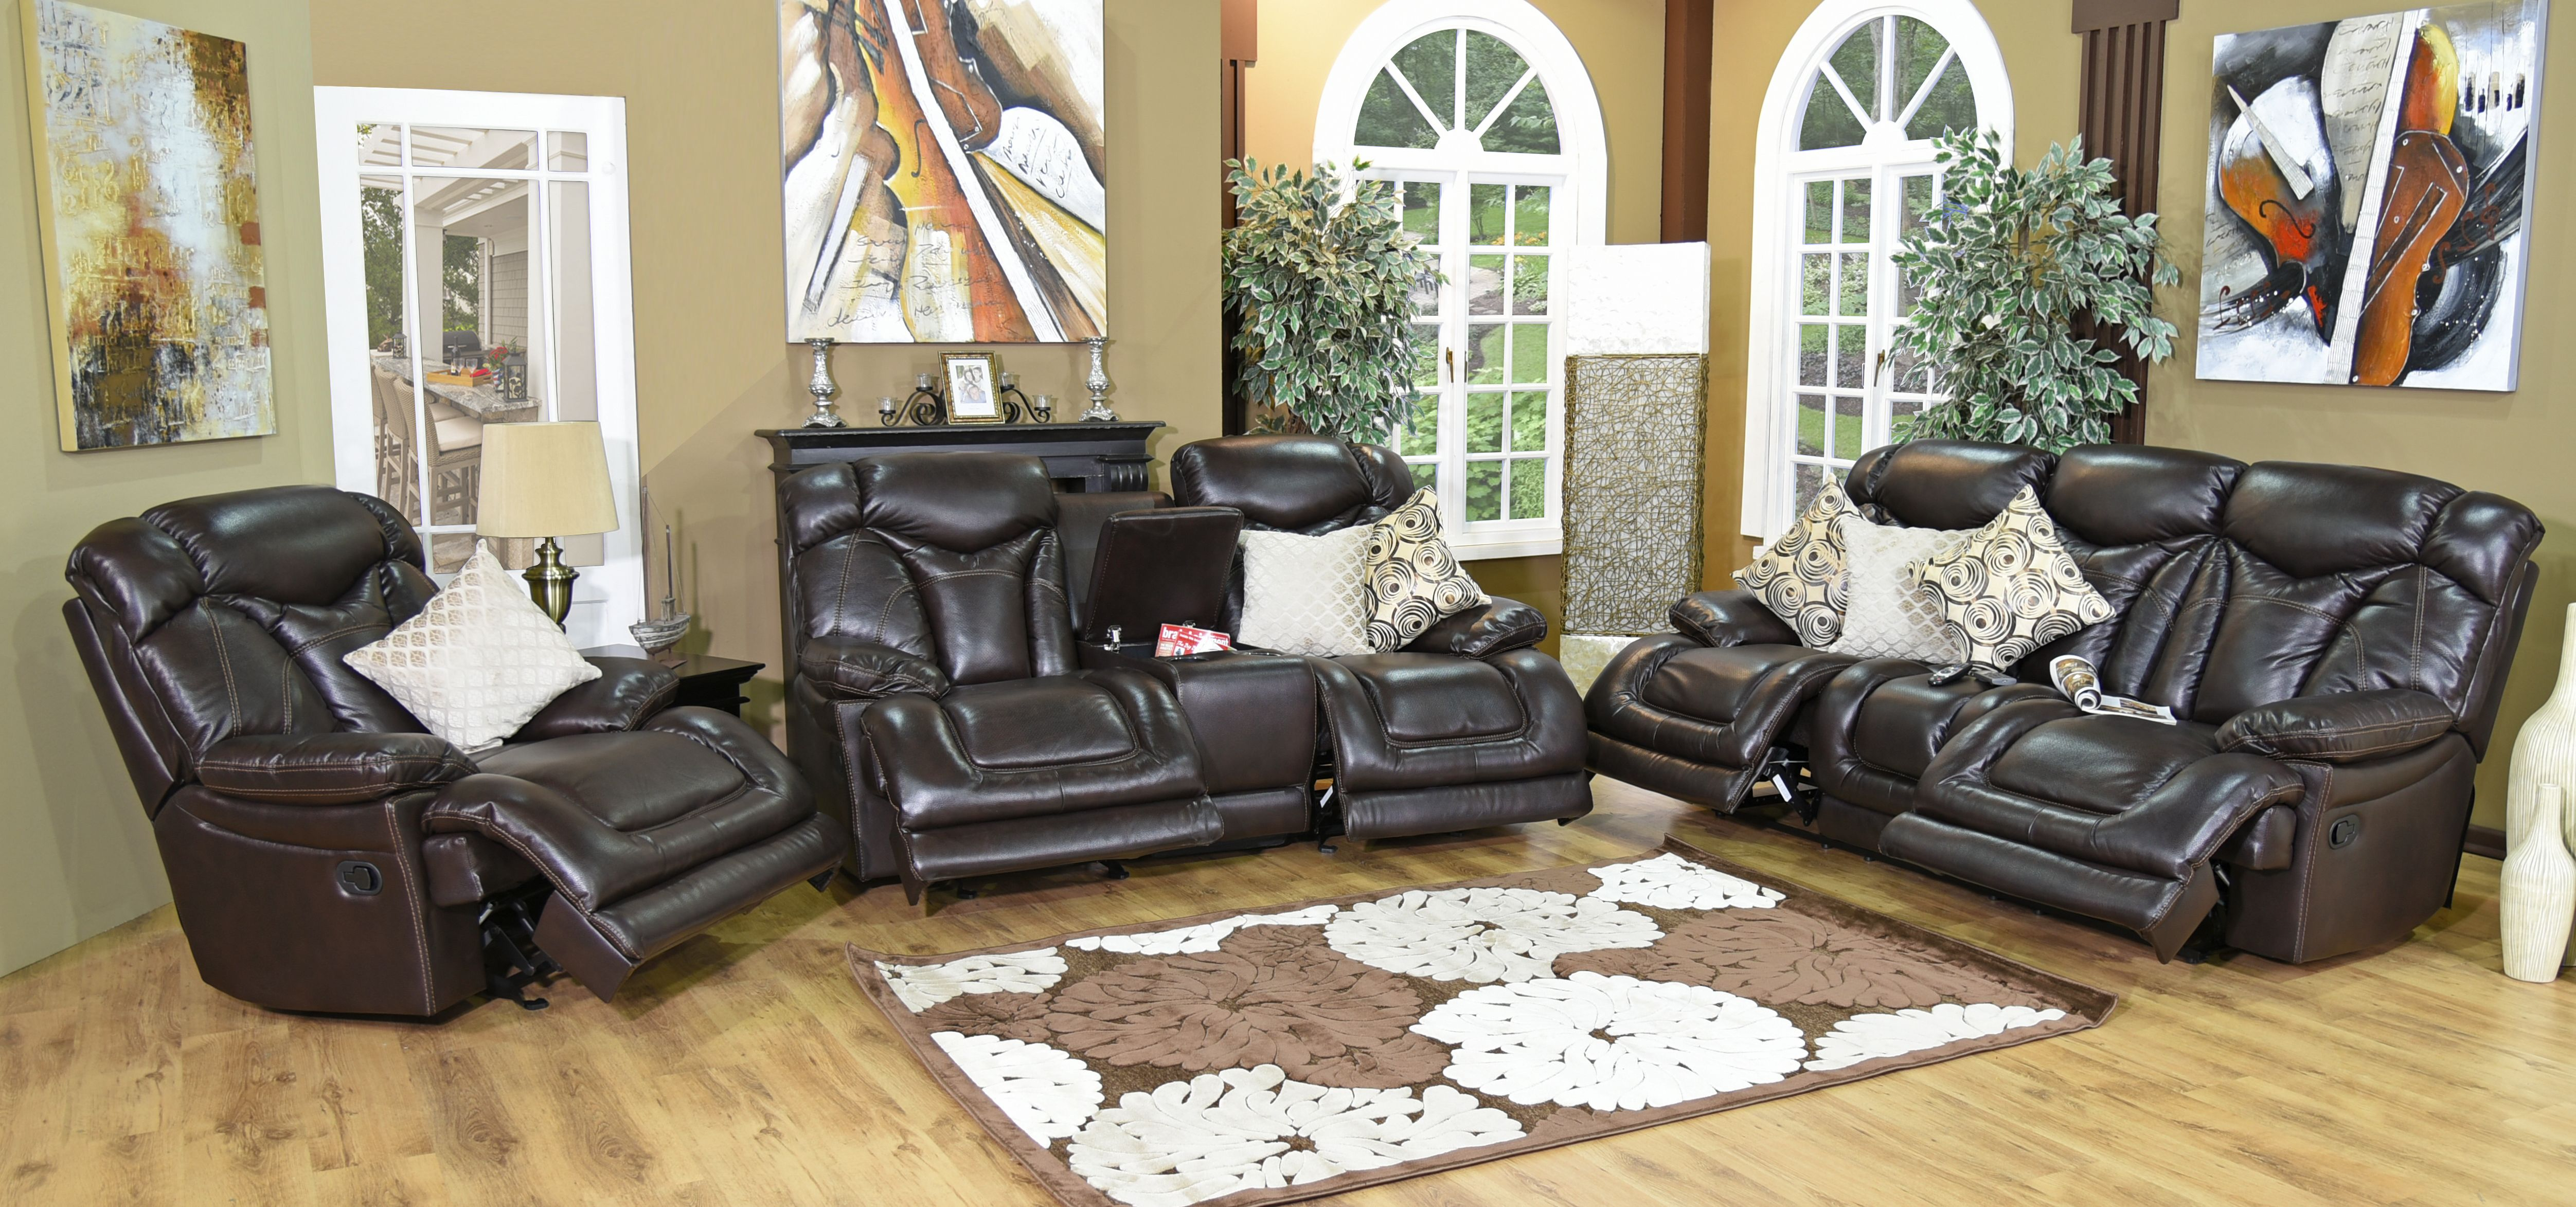 Enjoyable Brisco Recliner Lounge Suite Lounge Suites Lounge Recliner Dailytribune Chair Design For Home Dailytribuneorg